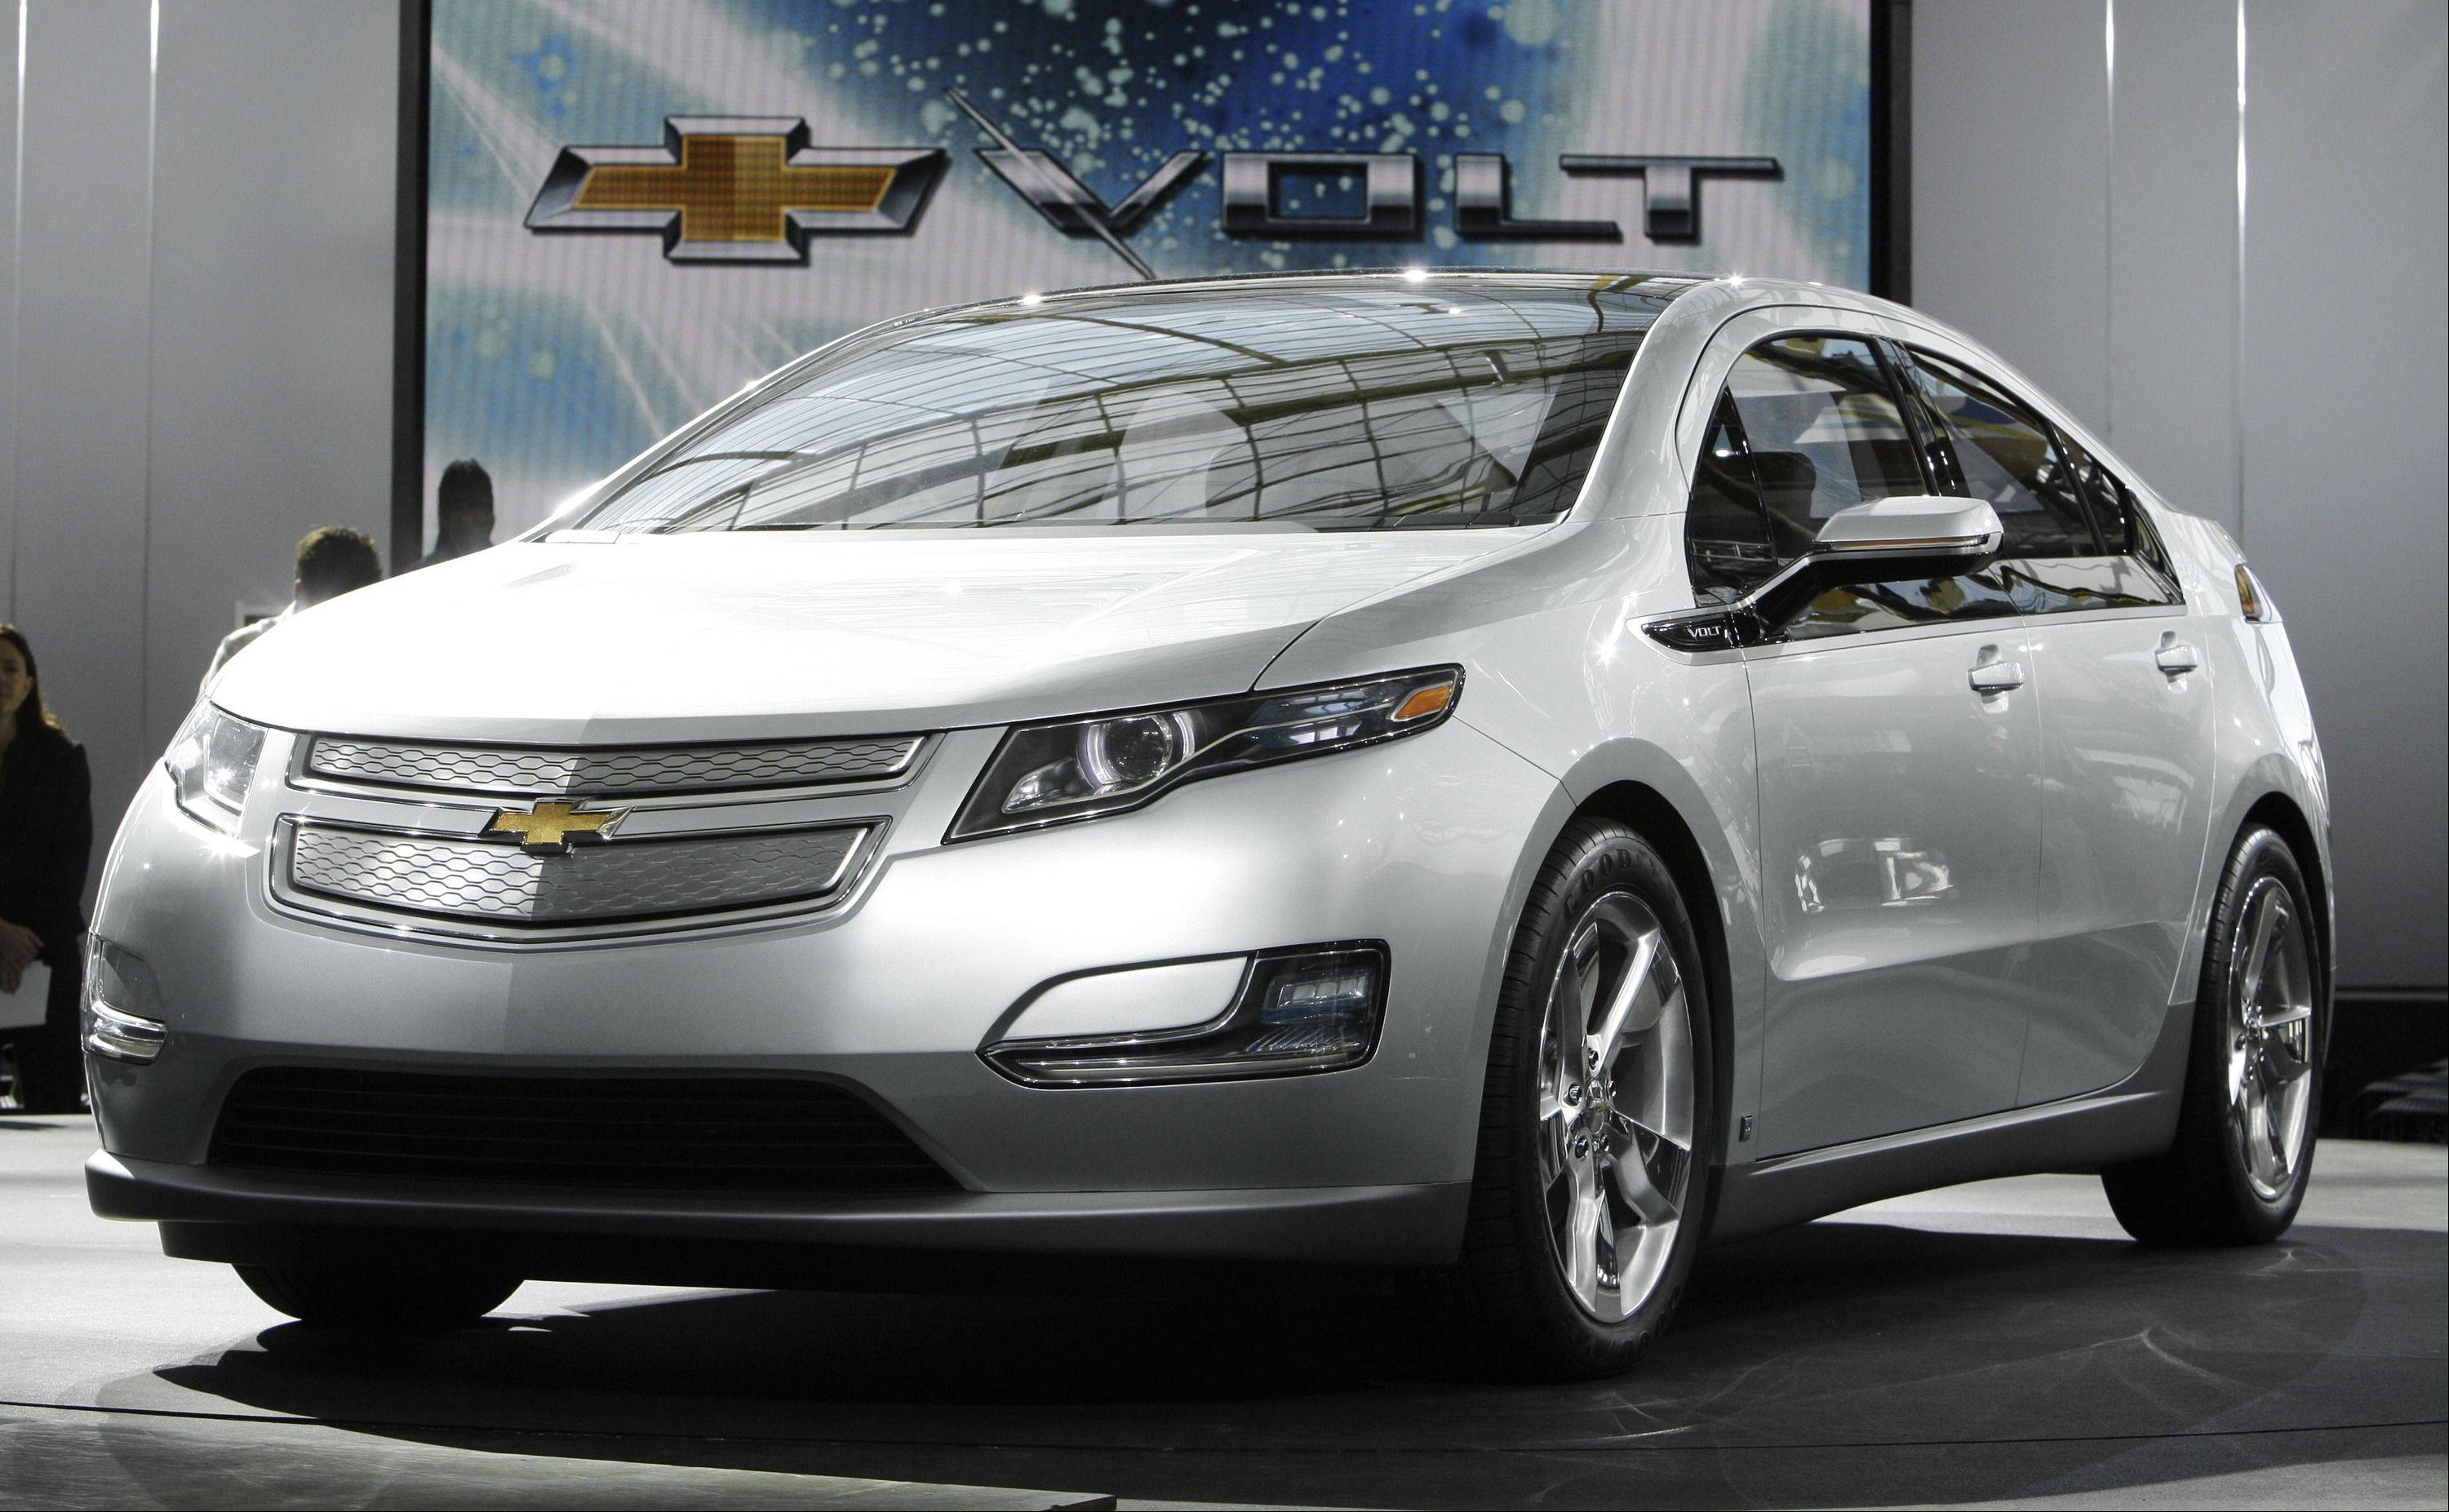 General Motors is knocking 12.5 percent off the Chevrolet Volt�s sticker price as it tries to better compete with electric car rivals.